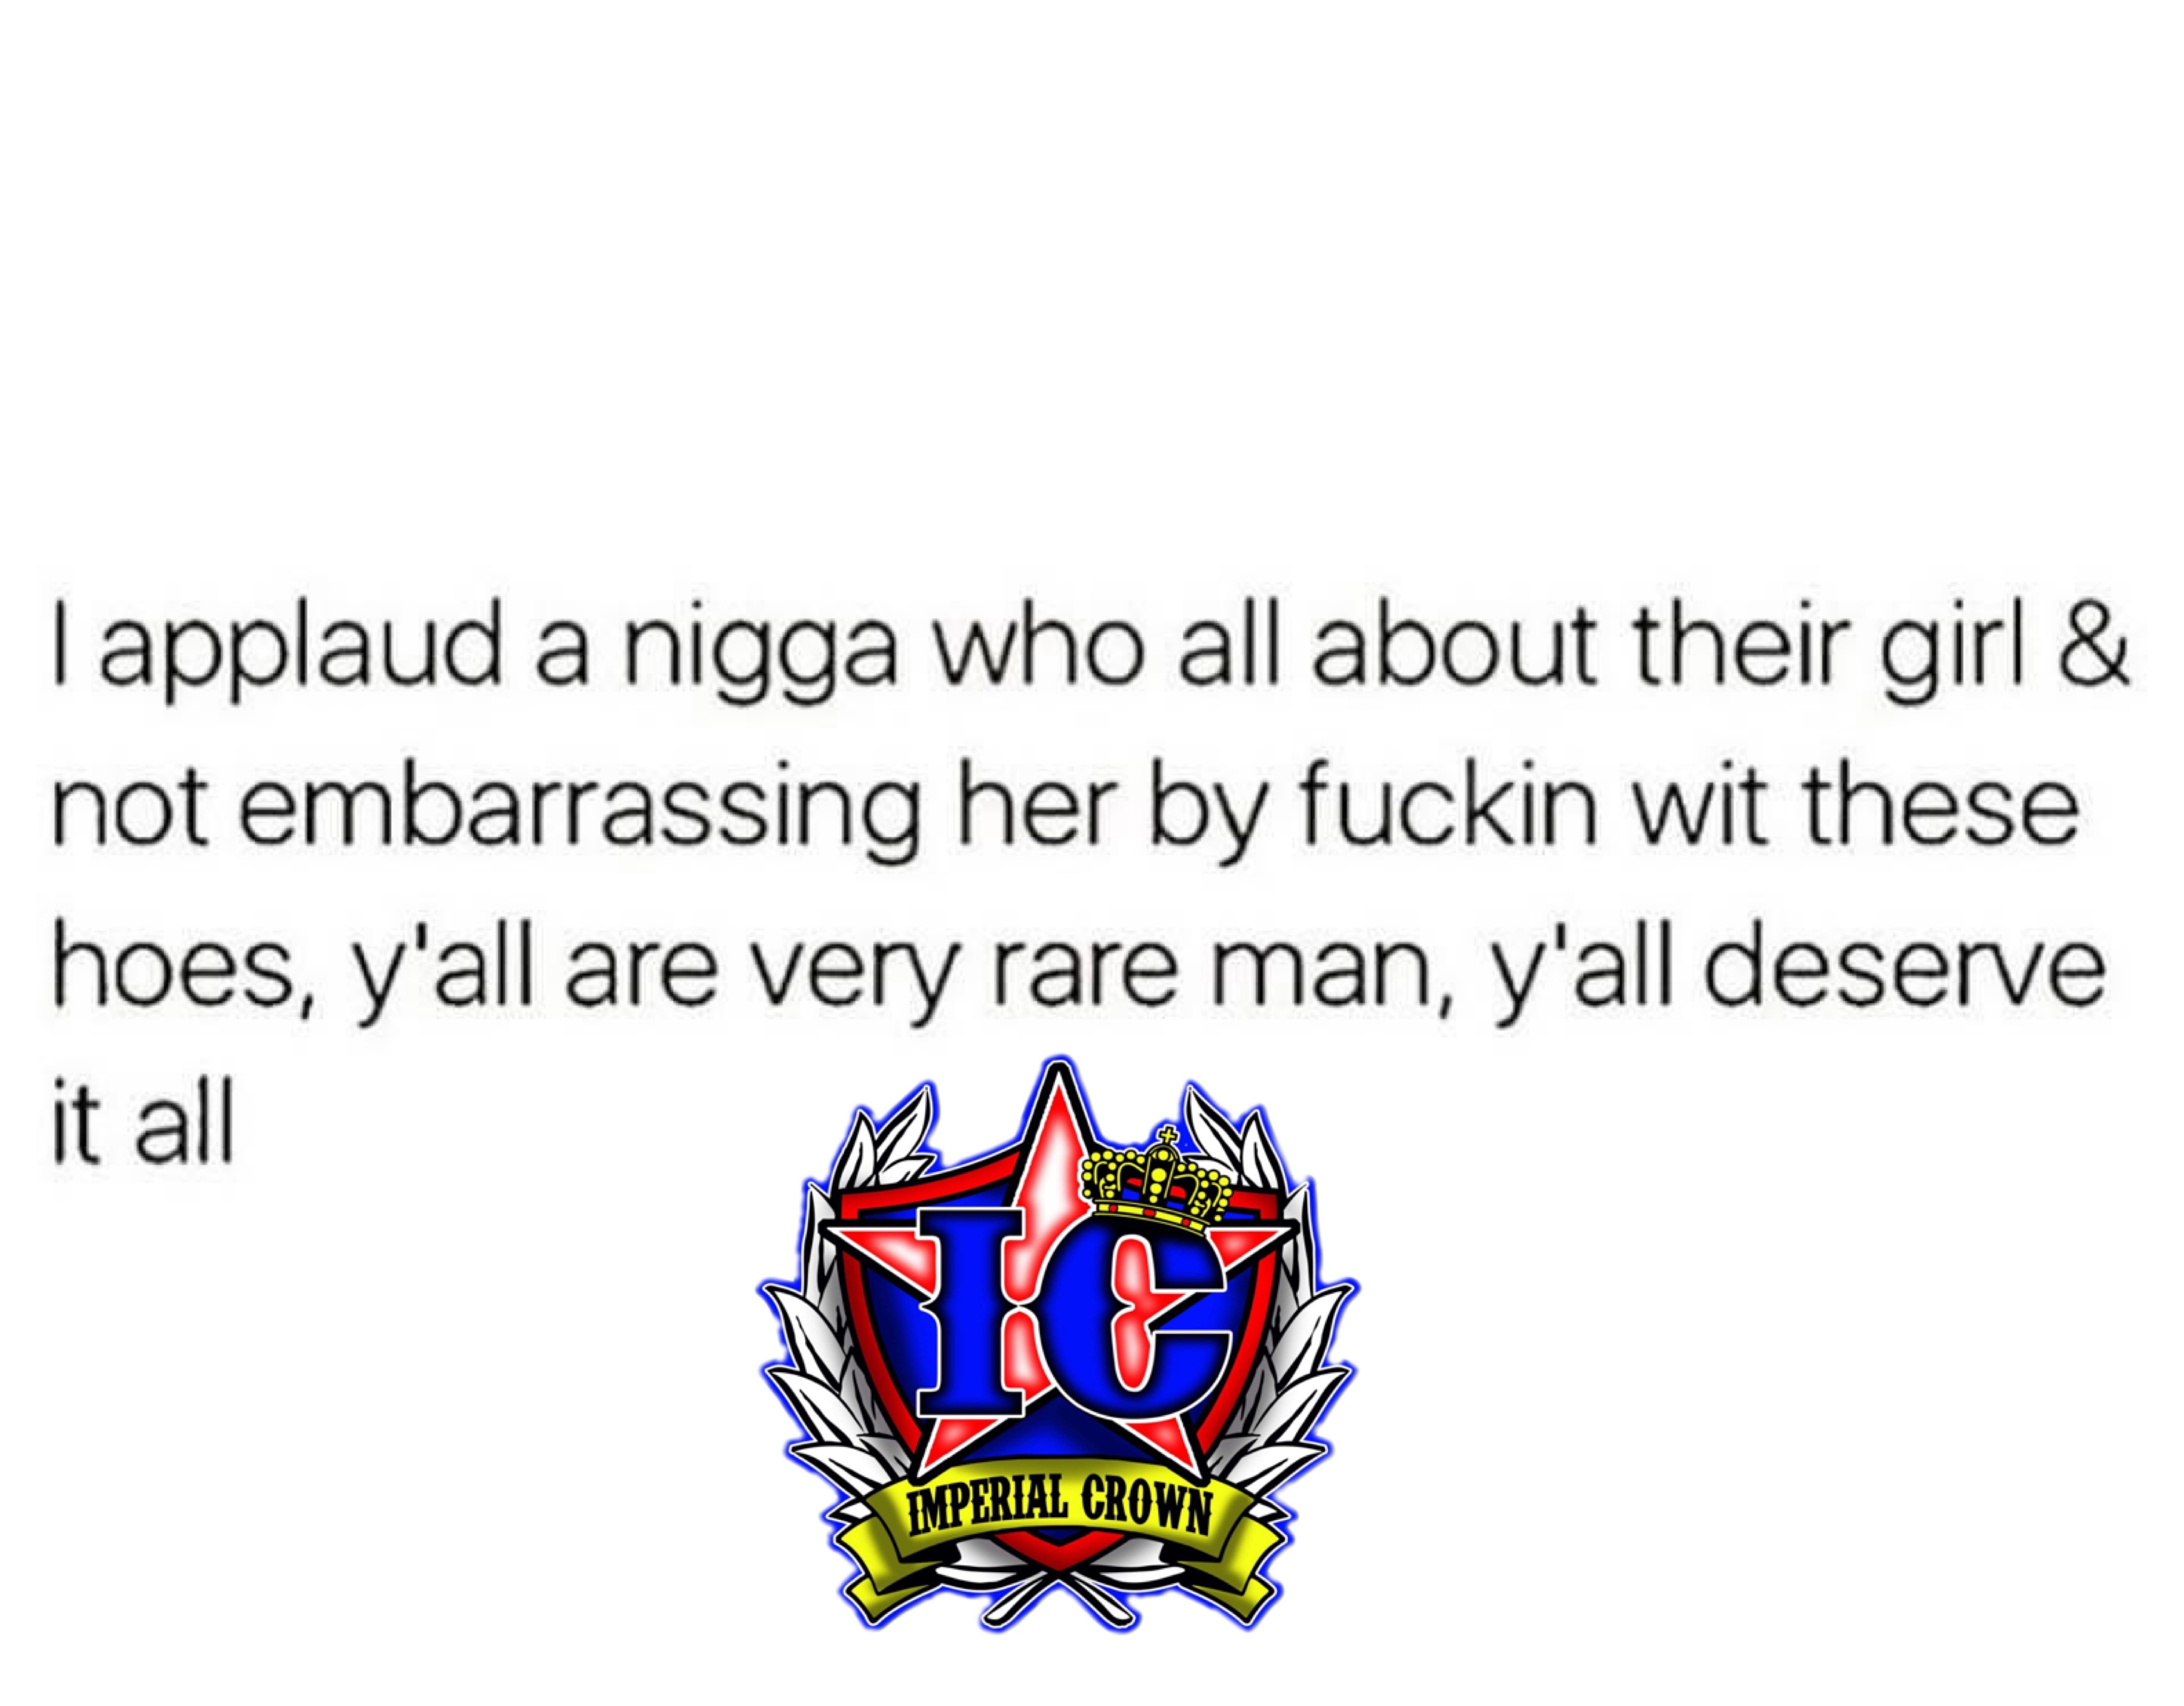 I applaud a nigga who all about Their girl & not embarrassing her by fuckin wit these hoes y'all are